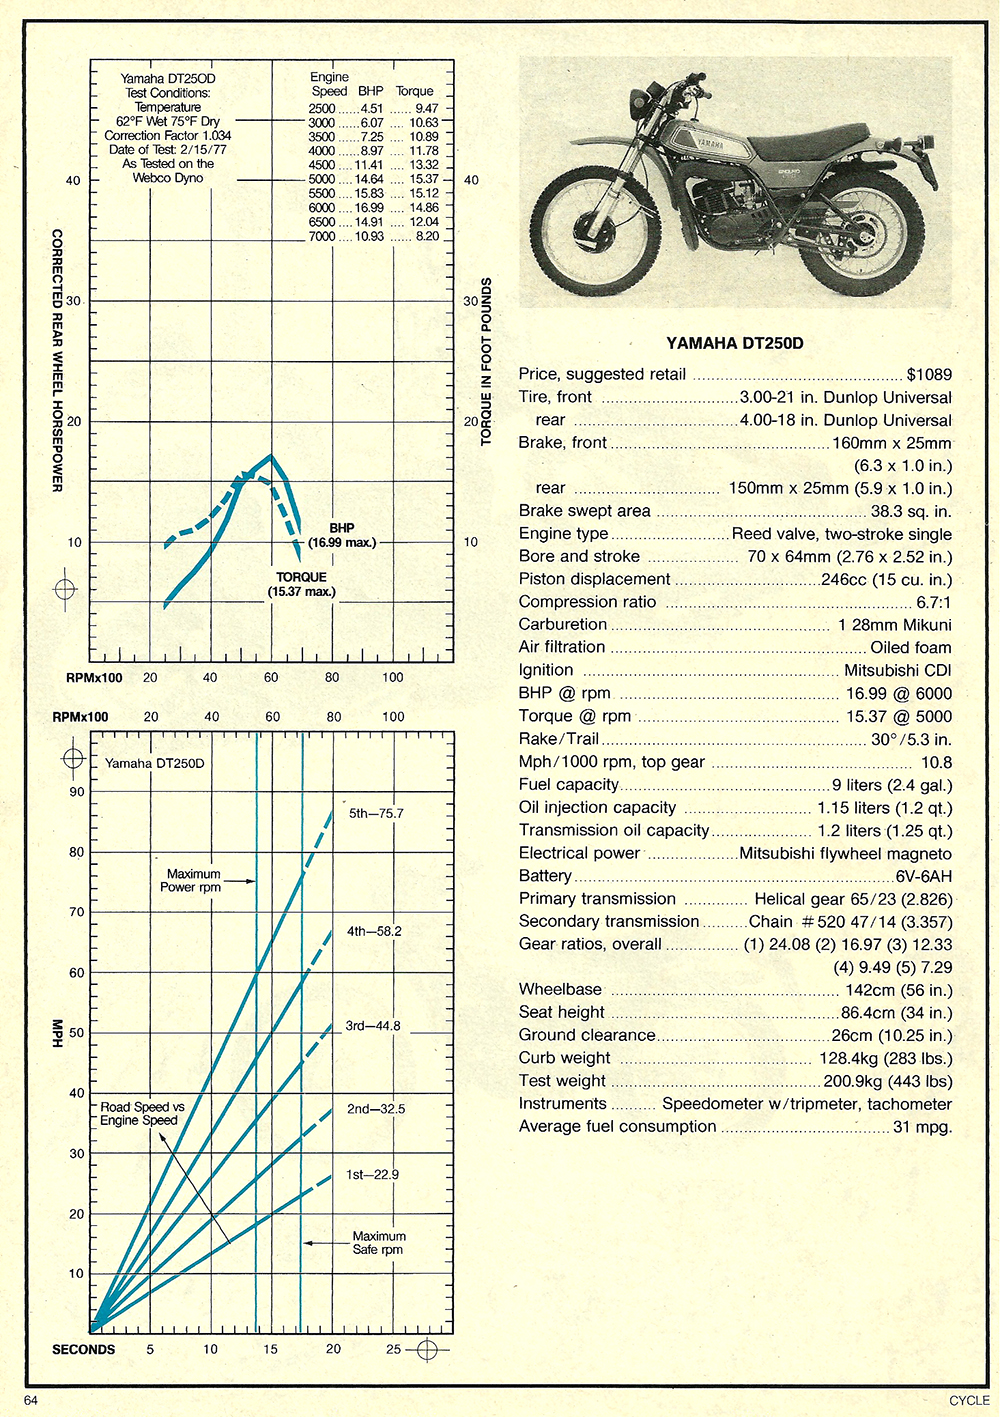 1977 Yamaha DT250D road test 4.jpg